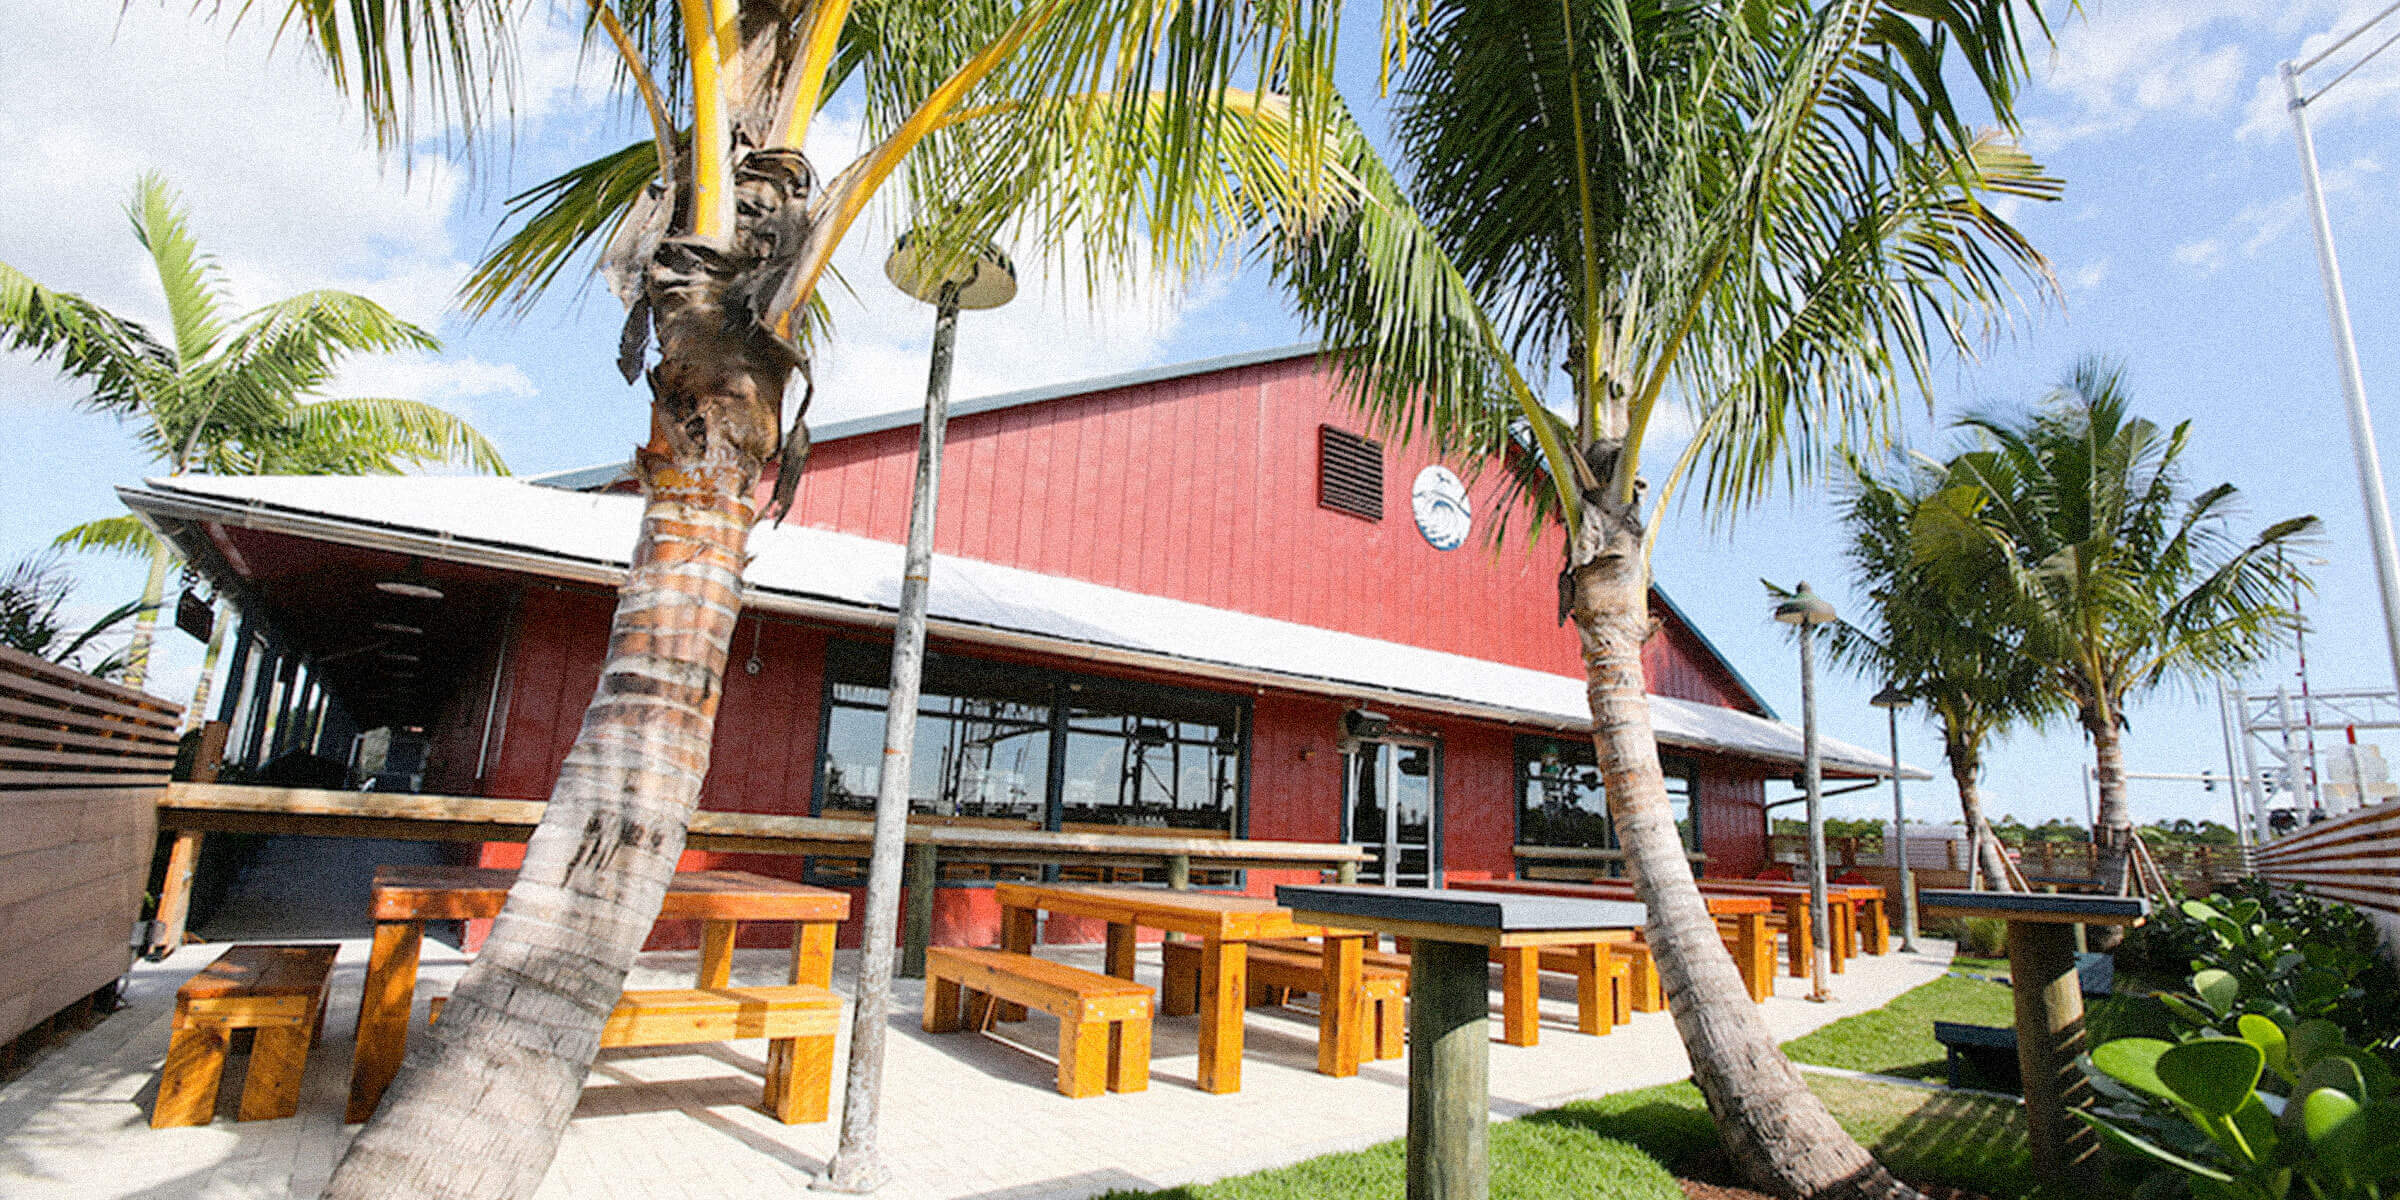 Outside SaltWater Brewery in the beer garden in Delray Beach, Florida